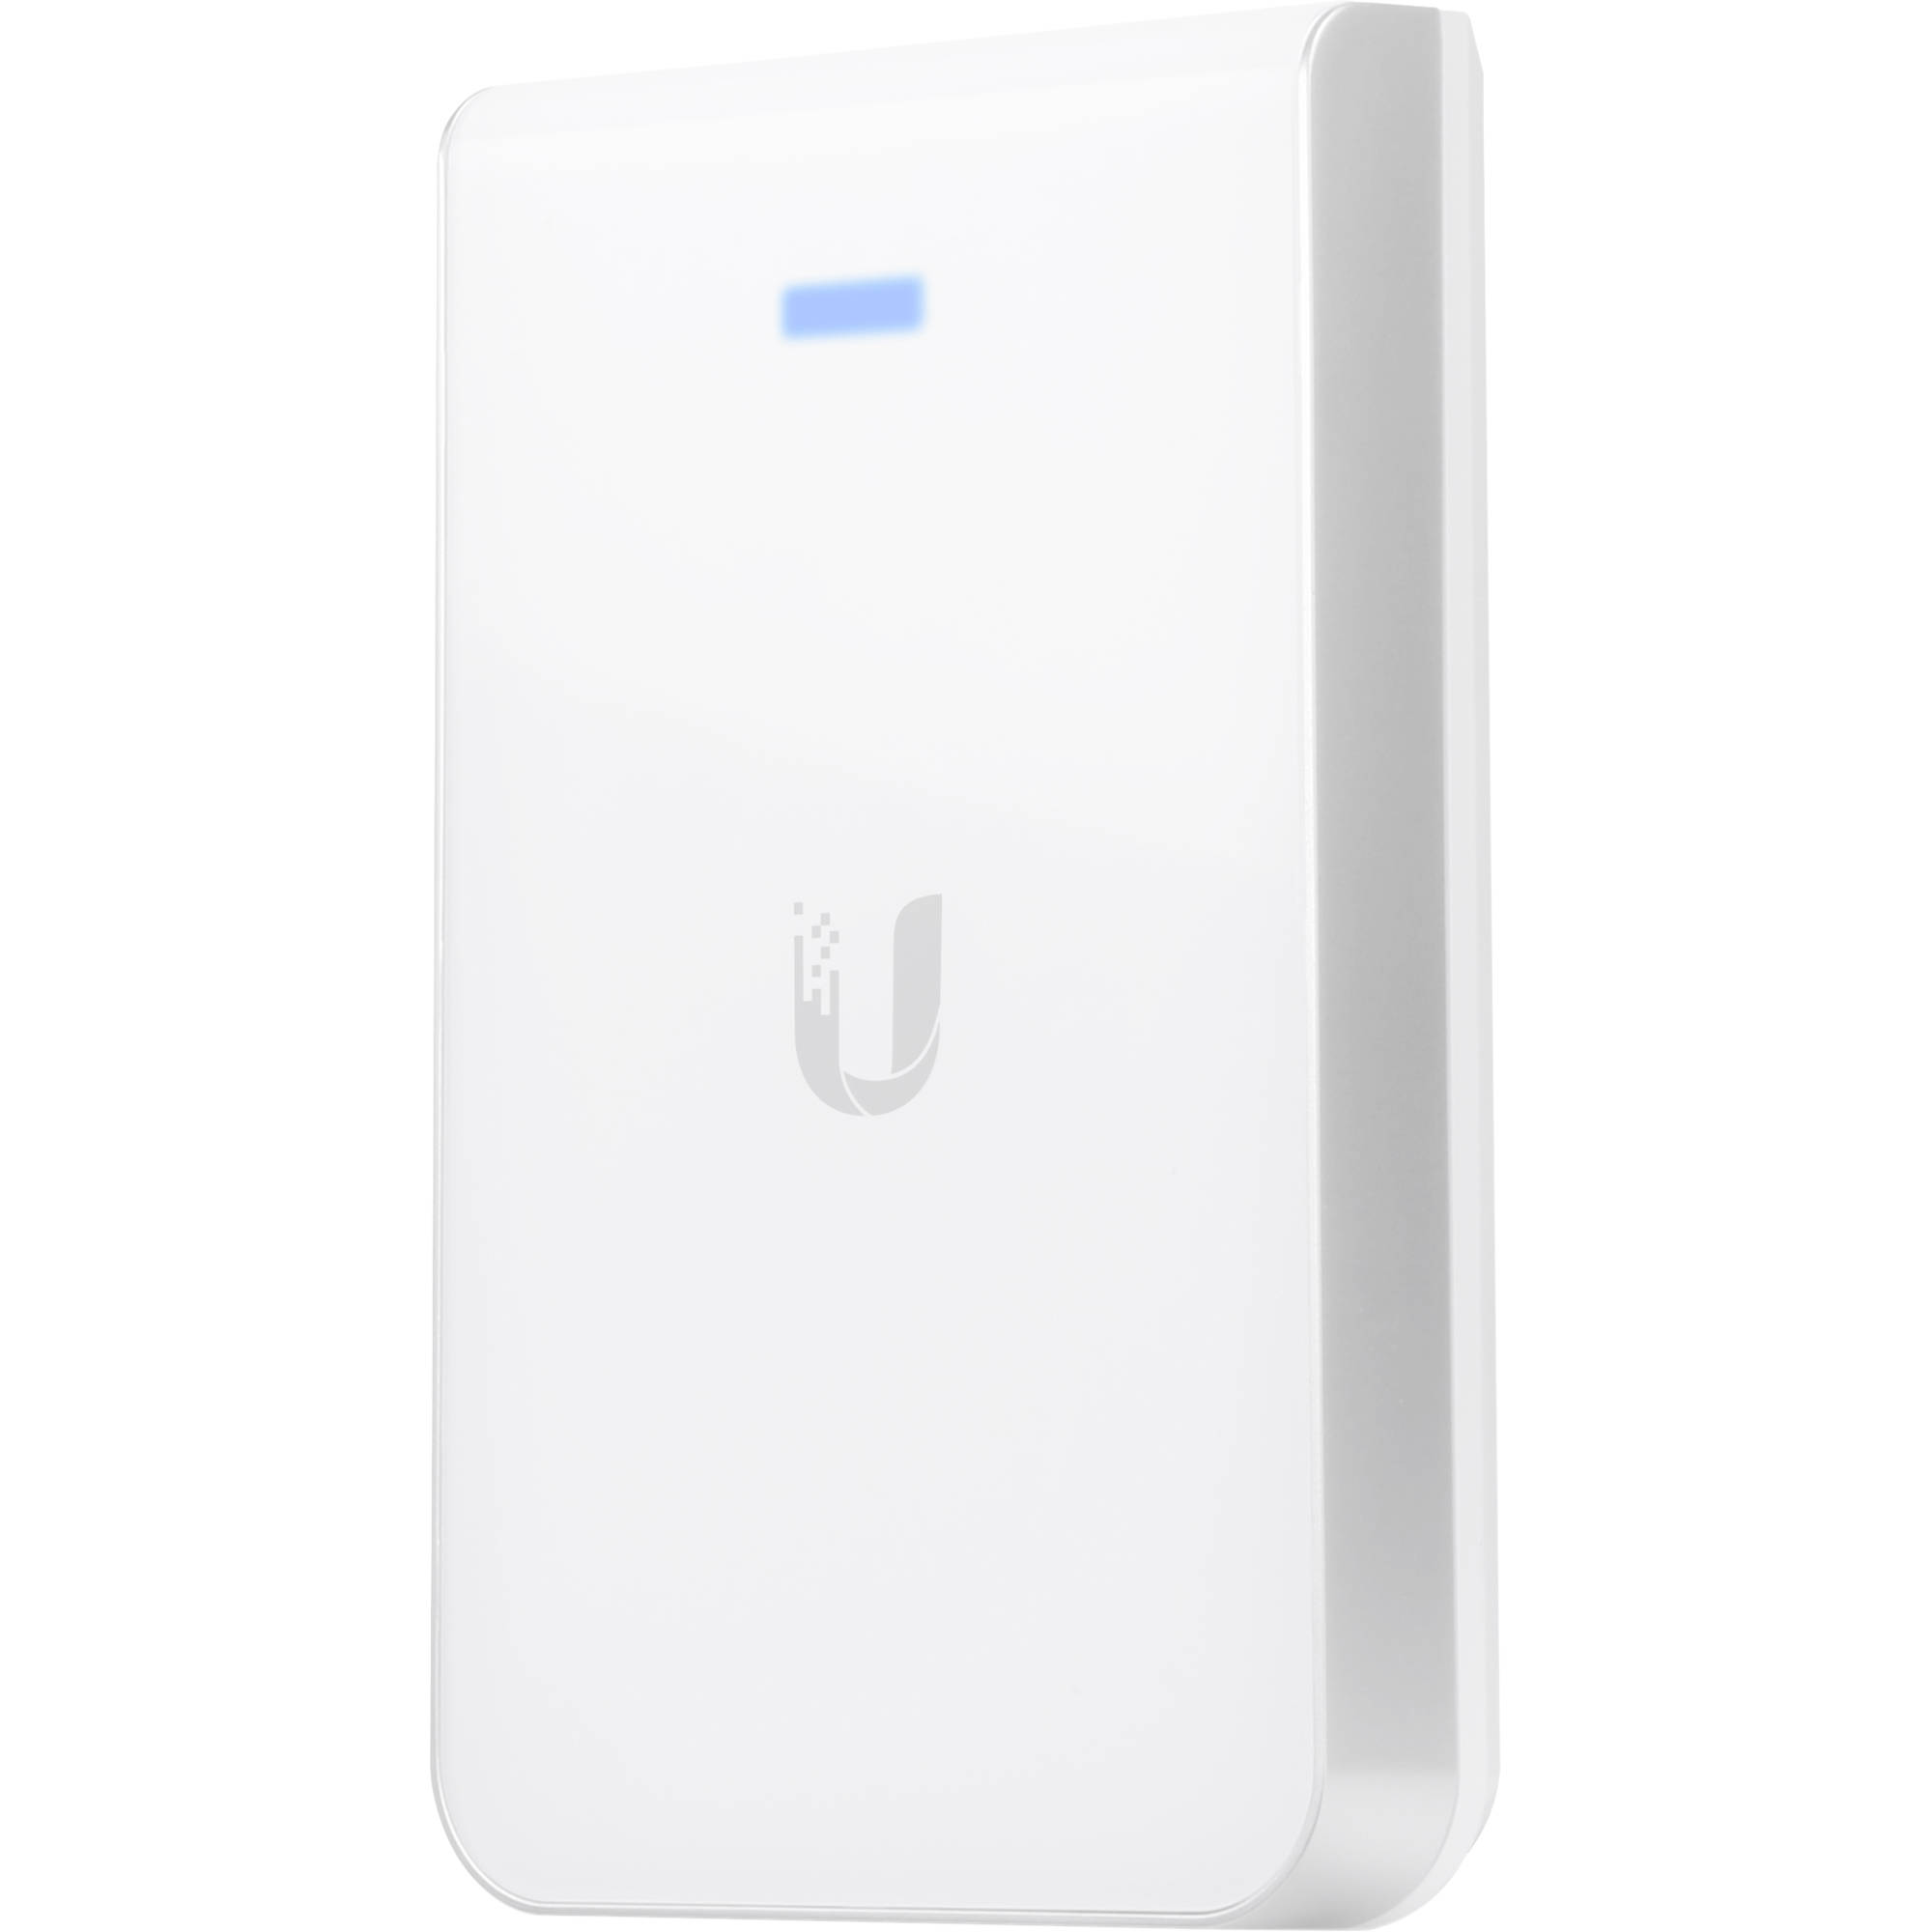 Ubiquiti UAP-IW Access Point Update